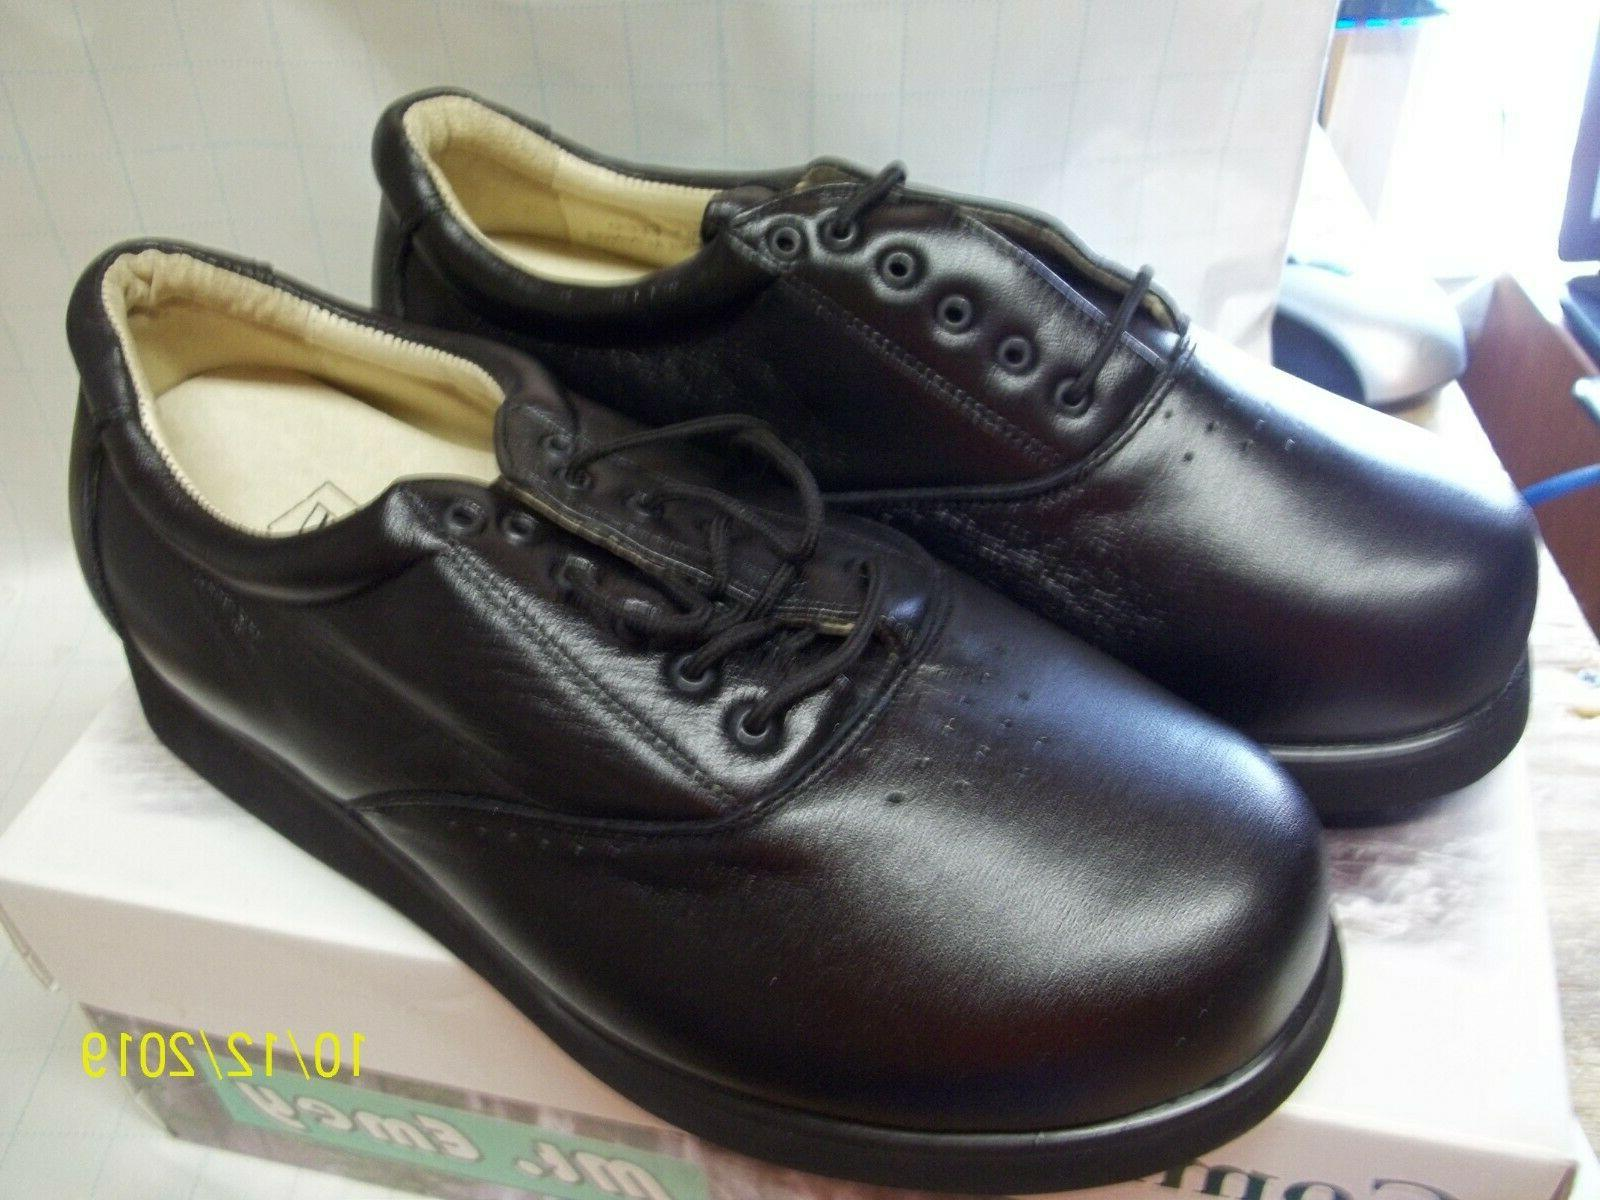 NIB Mt. LACE UP 3E EEE Therapeutic ShoesFree S/H